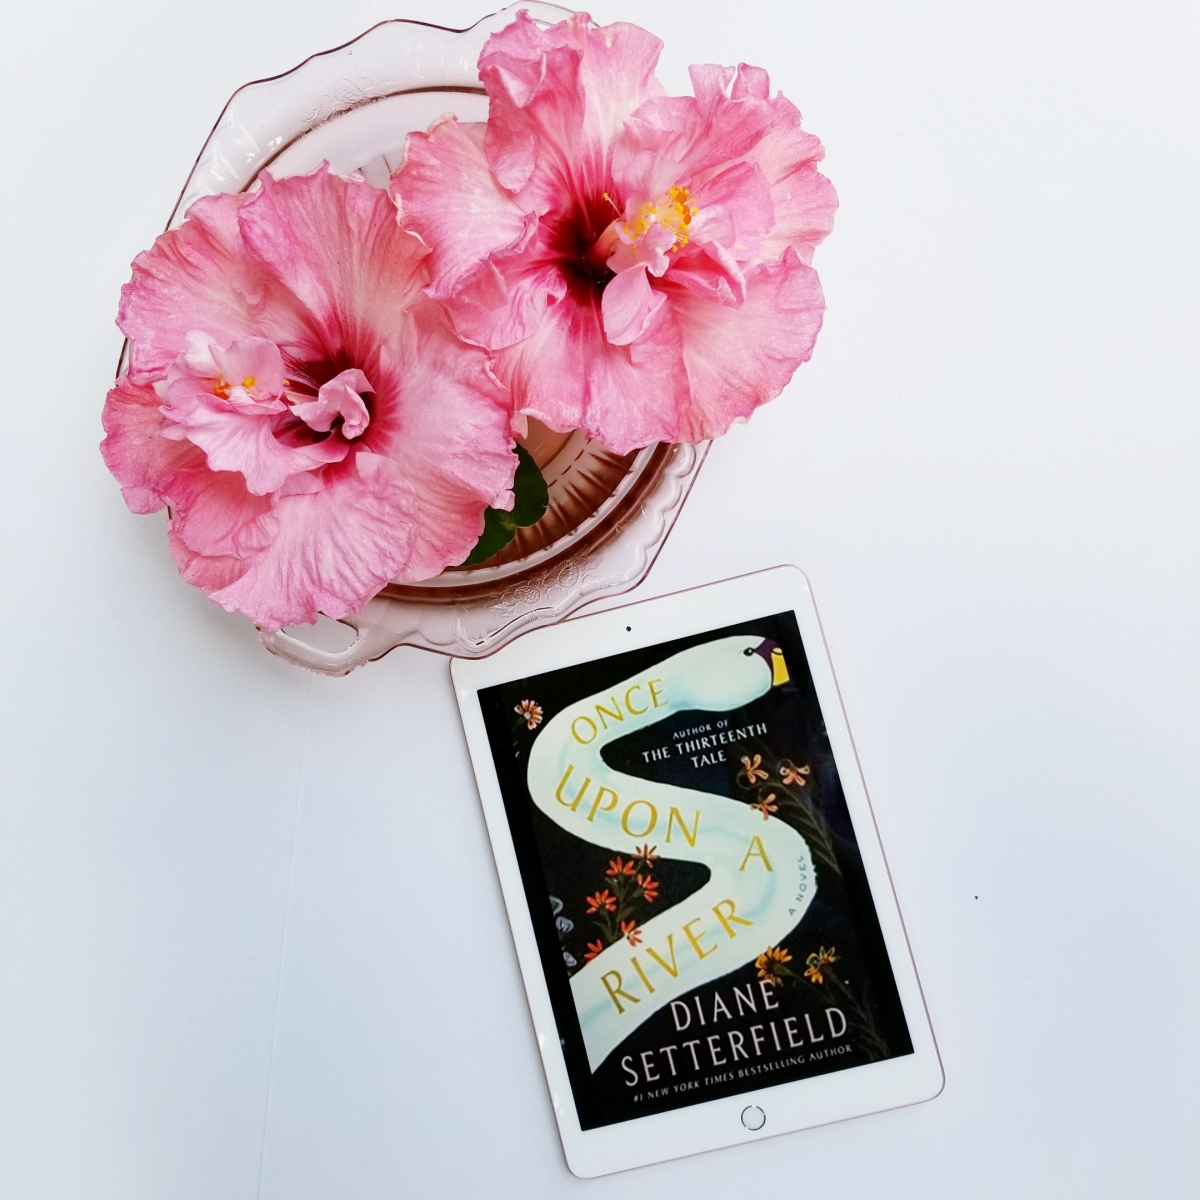 Once Upon a River by Diane Setterfield #bookreview #tarheelreader #thrthruponriver @dianesetterfie1 @atriabooks #onceuponariver